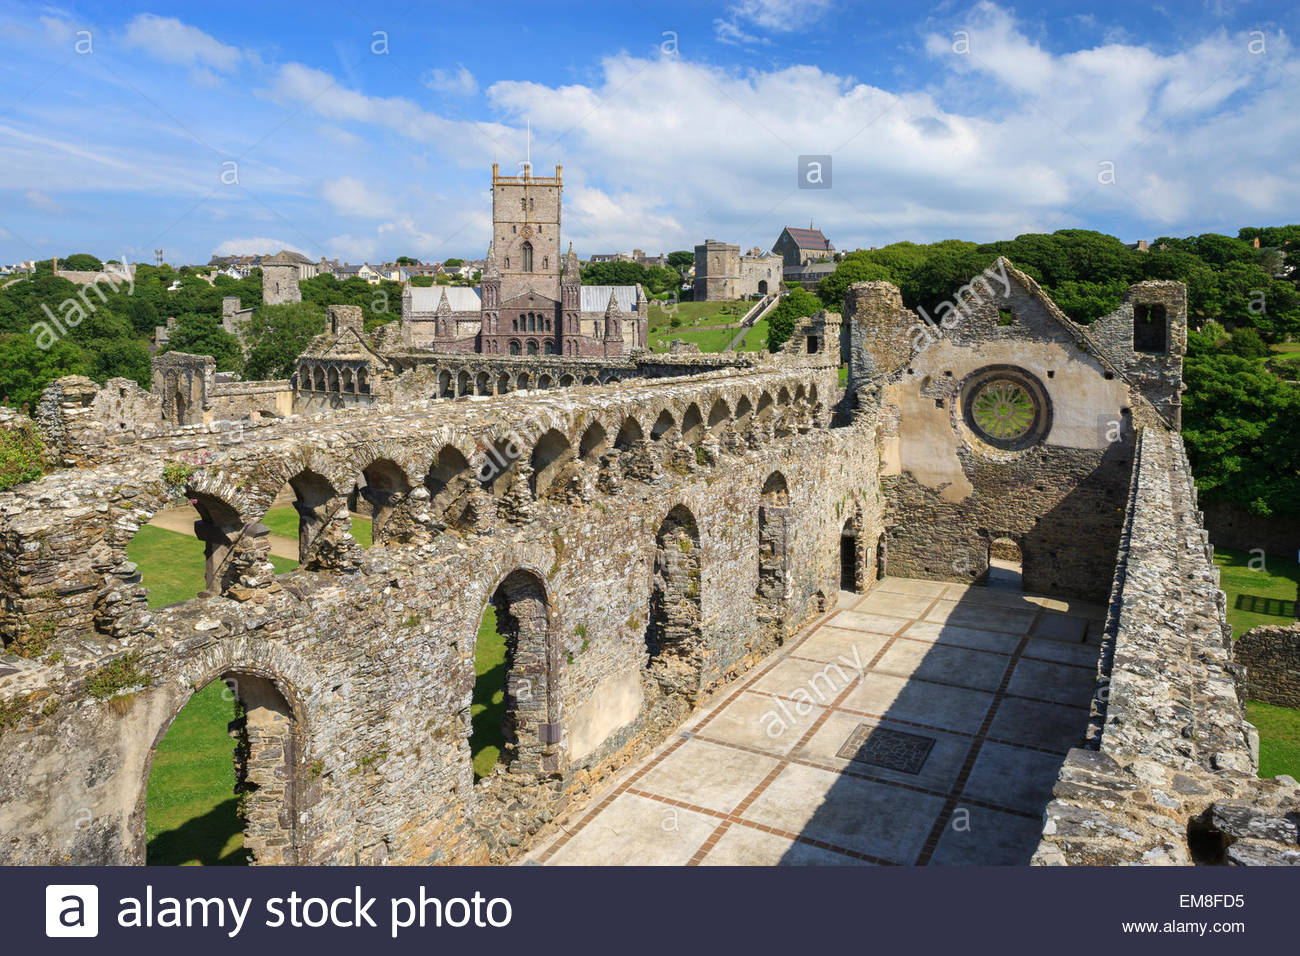 St. David's Cathedral South Wales, View of St Davids Cathedral Pembrokeshire Eglwys Gadeiriol Tyddewi ...